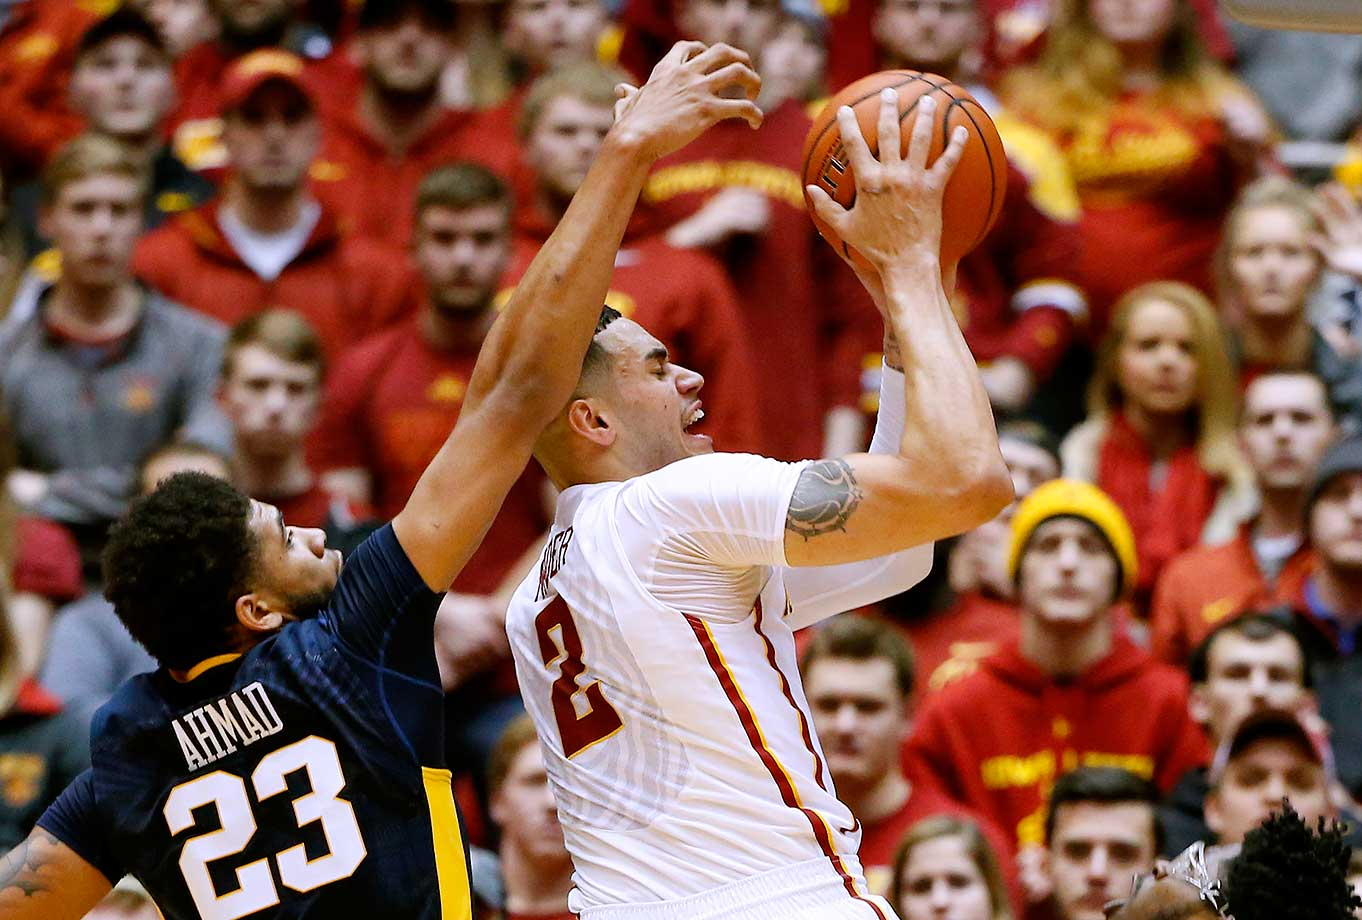 Abdel Nader of the Iowa State Cyclones is fouled by Esa Ahmad of the West Virginia Mountaineers at Hilton Coliseum in Ames, Iowa. West Virginia won 81-76.